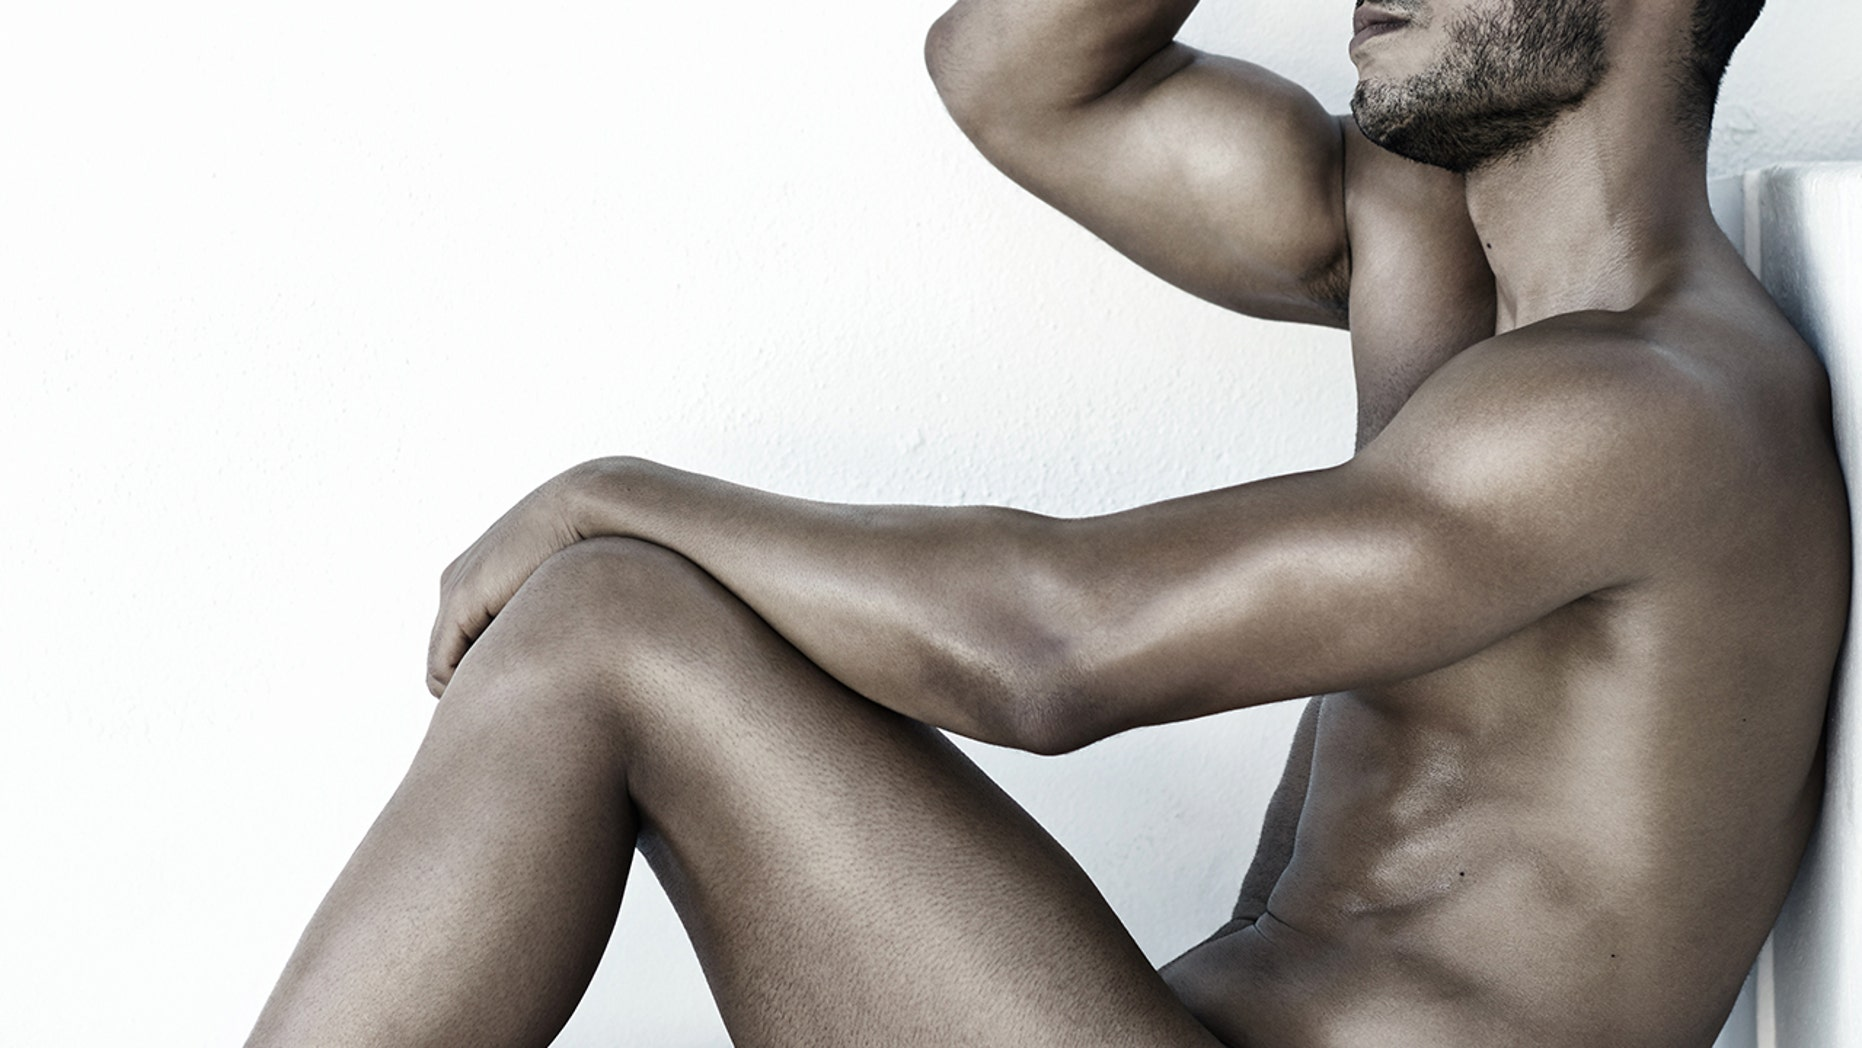 A clothing company used naked men in its ads but many are saying they're sexist